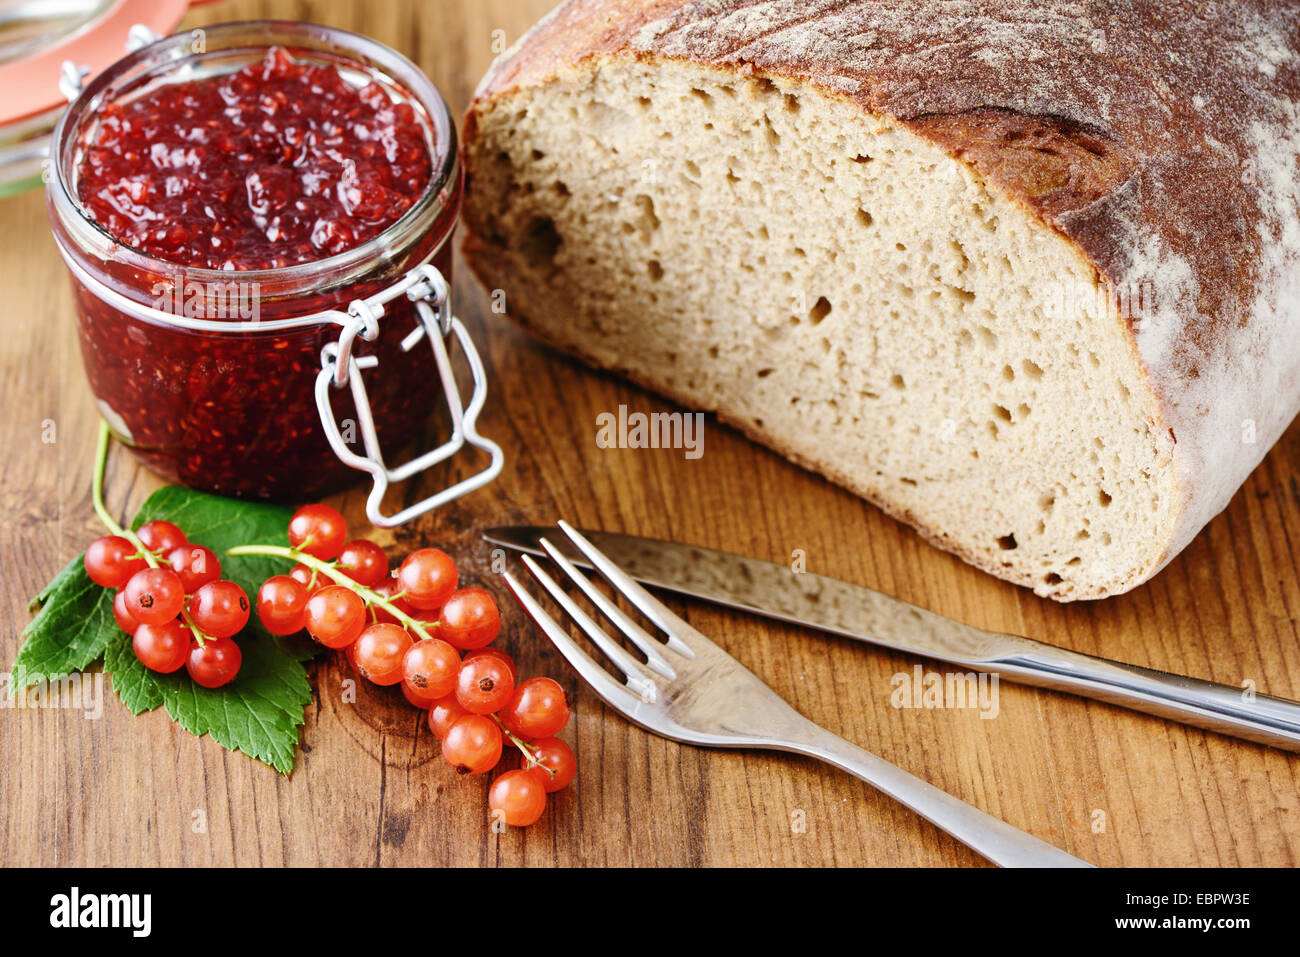 red currant jam and fresh bread - Stock Image